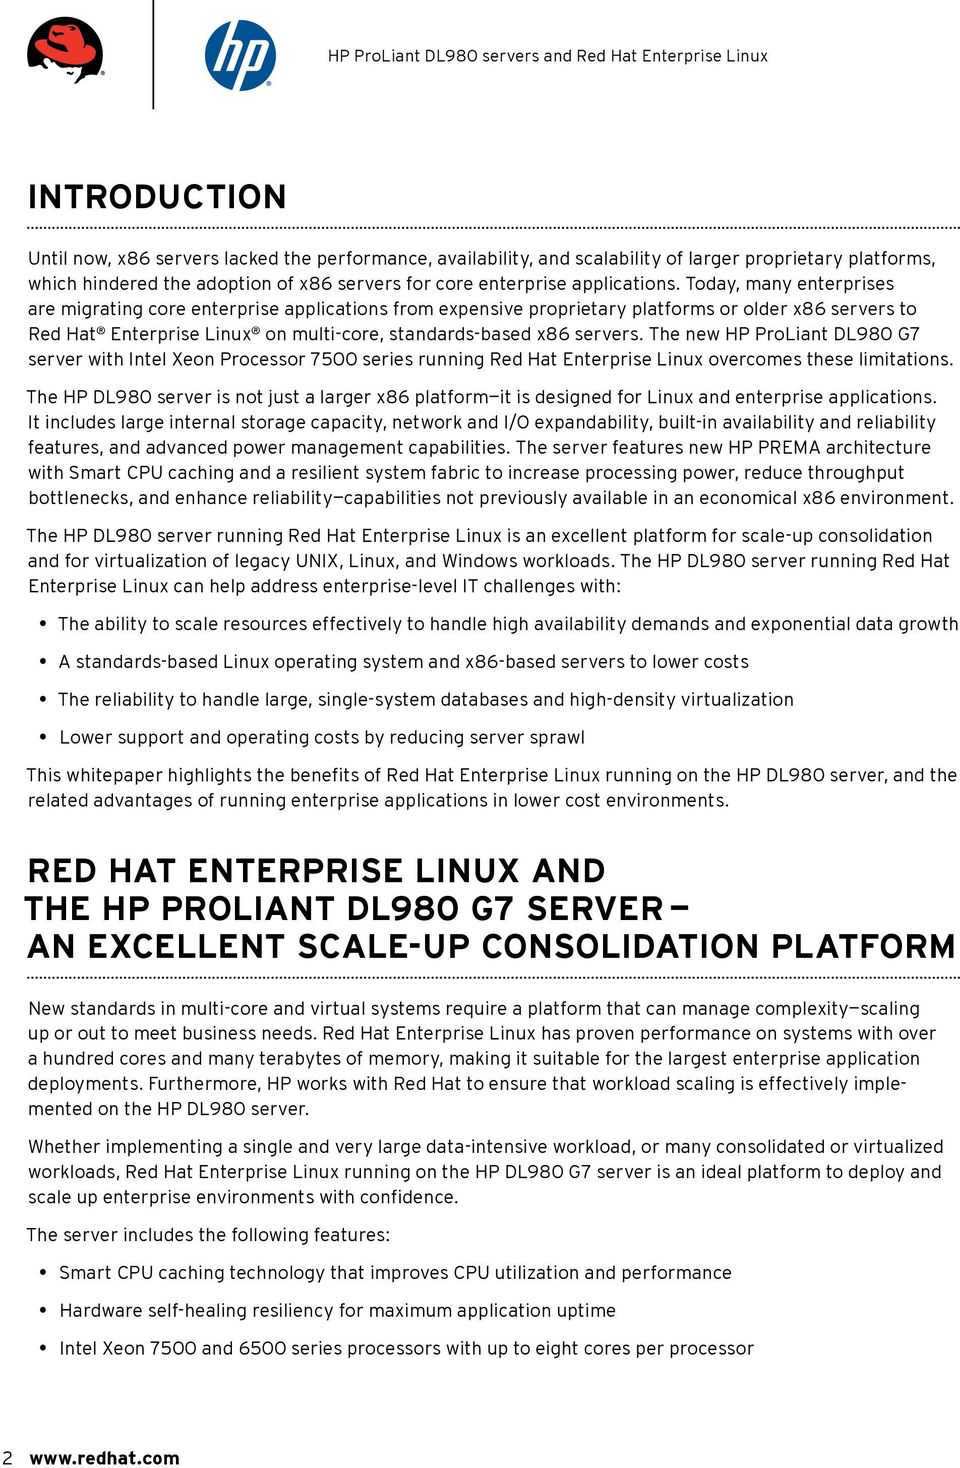 The new HP ProLiant DL980 G7 server with Intel Xeon Processor 7500 series running Red Hat Enterprise Linux overcomes these limitations.